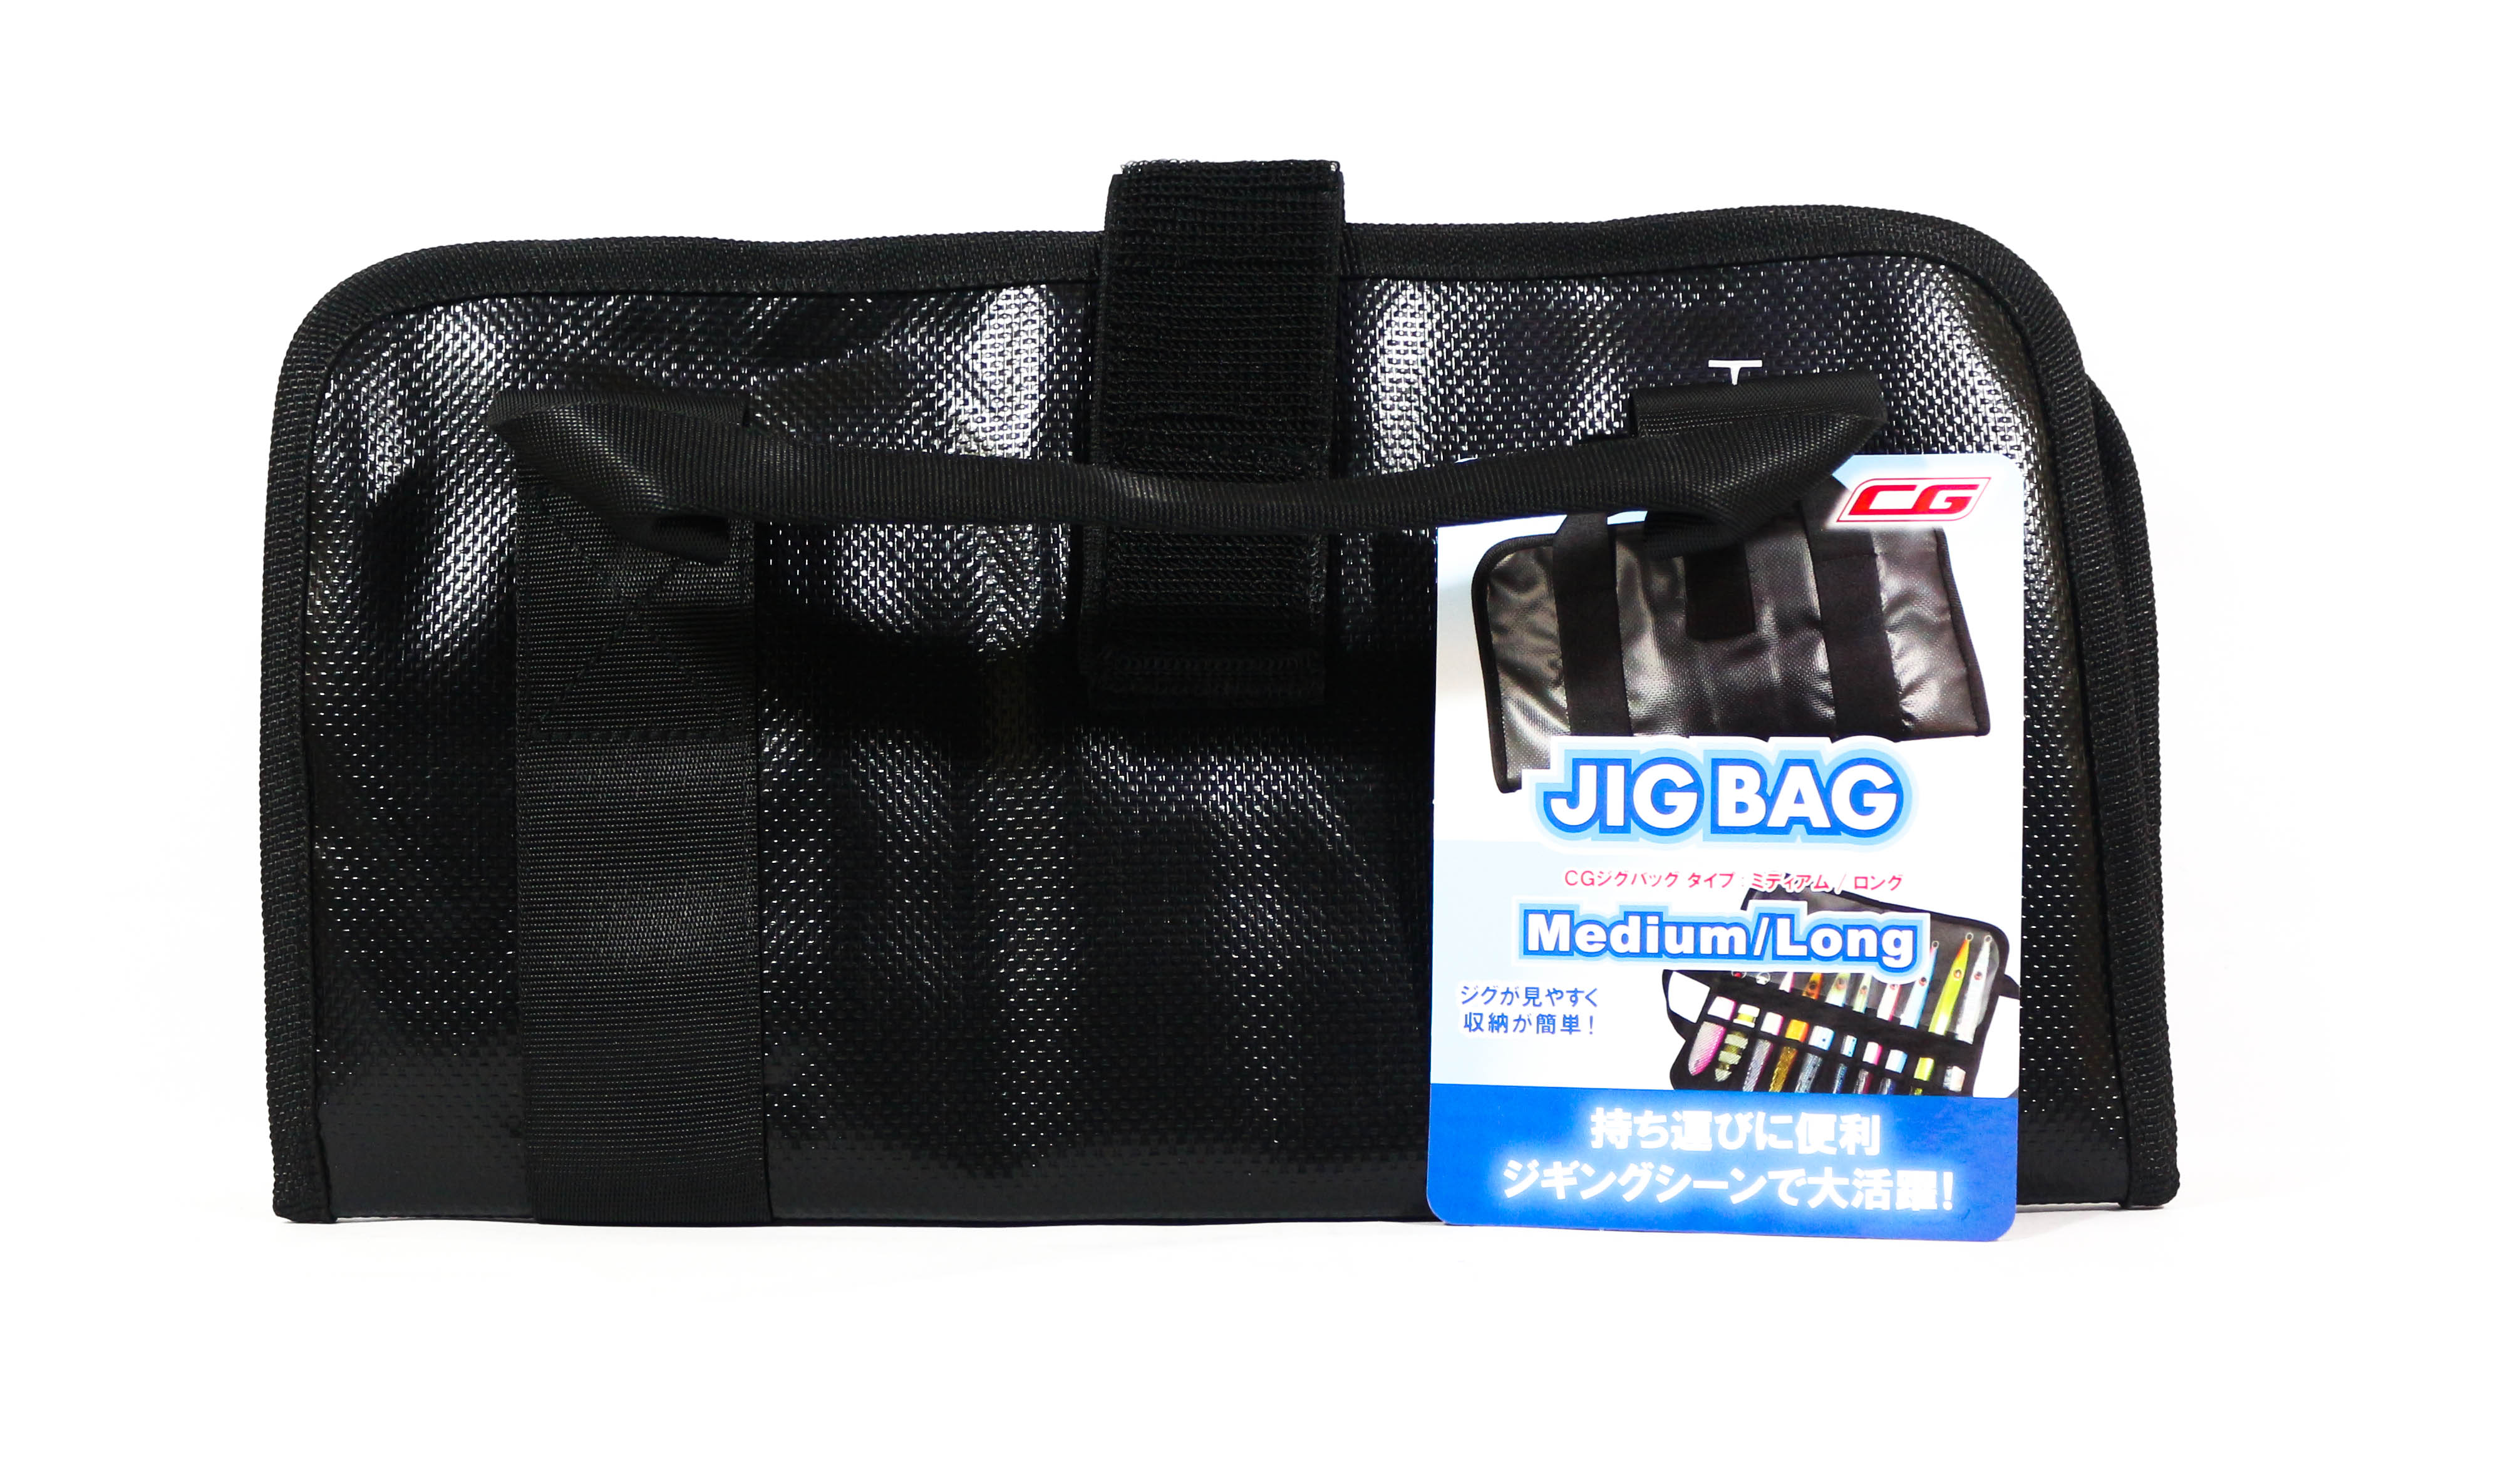 Golden Mean CG Jig Bag Medium/Long 300 x 320mm (4378)